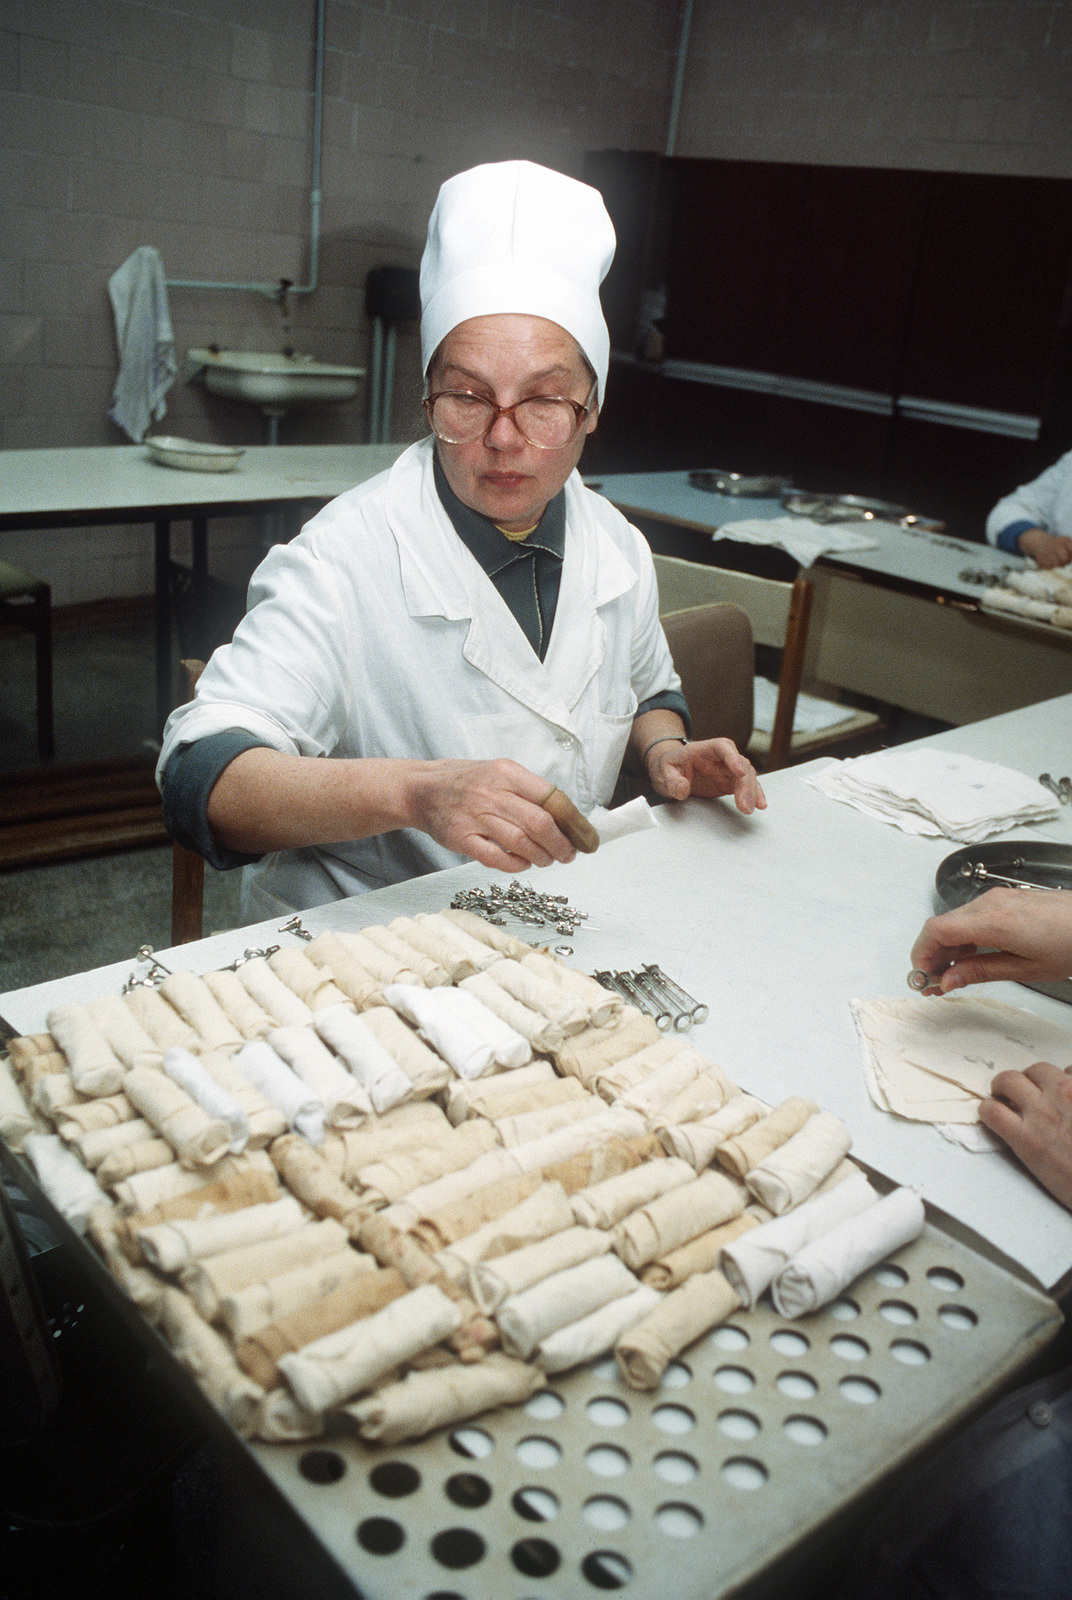 A nurse prepares needles and syringes for sterilization at a hospital in Bishkek. The syringes and needles are reused due to the shortage of medical supplies. To alleviate such shortages, the U.S. Army's 7th Medical Command is coordinating delivery of materials and equipment as part of Operation Provide Hope III